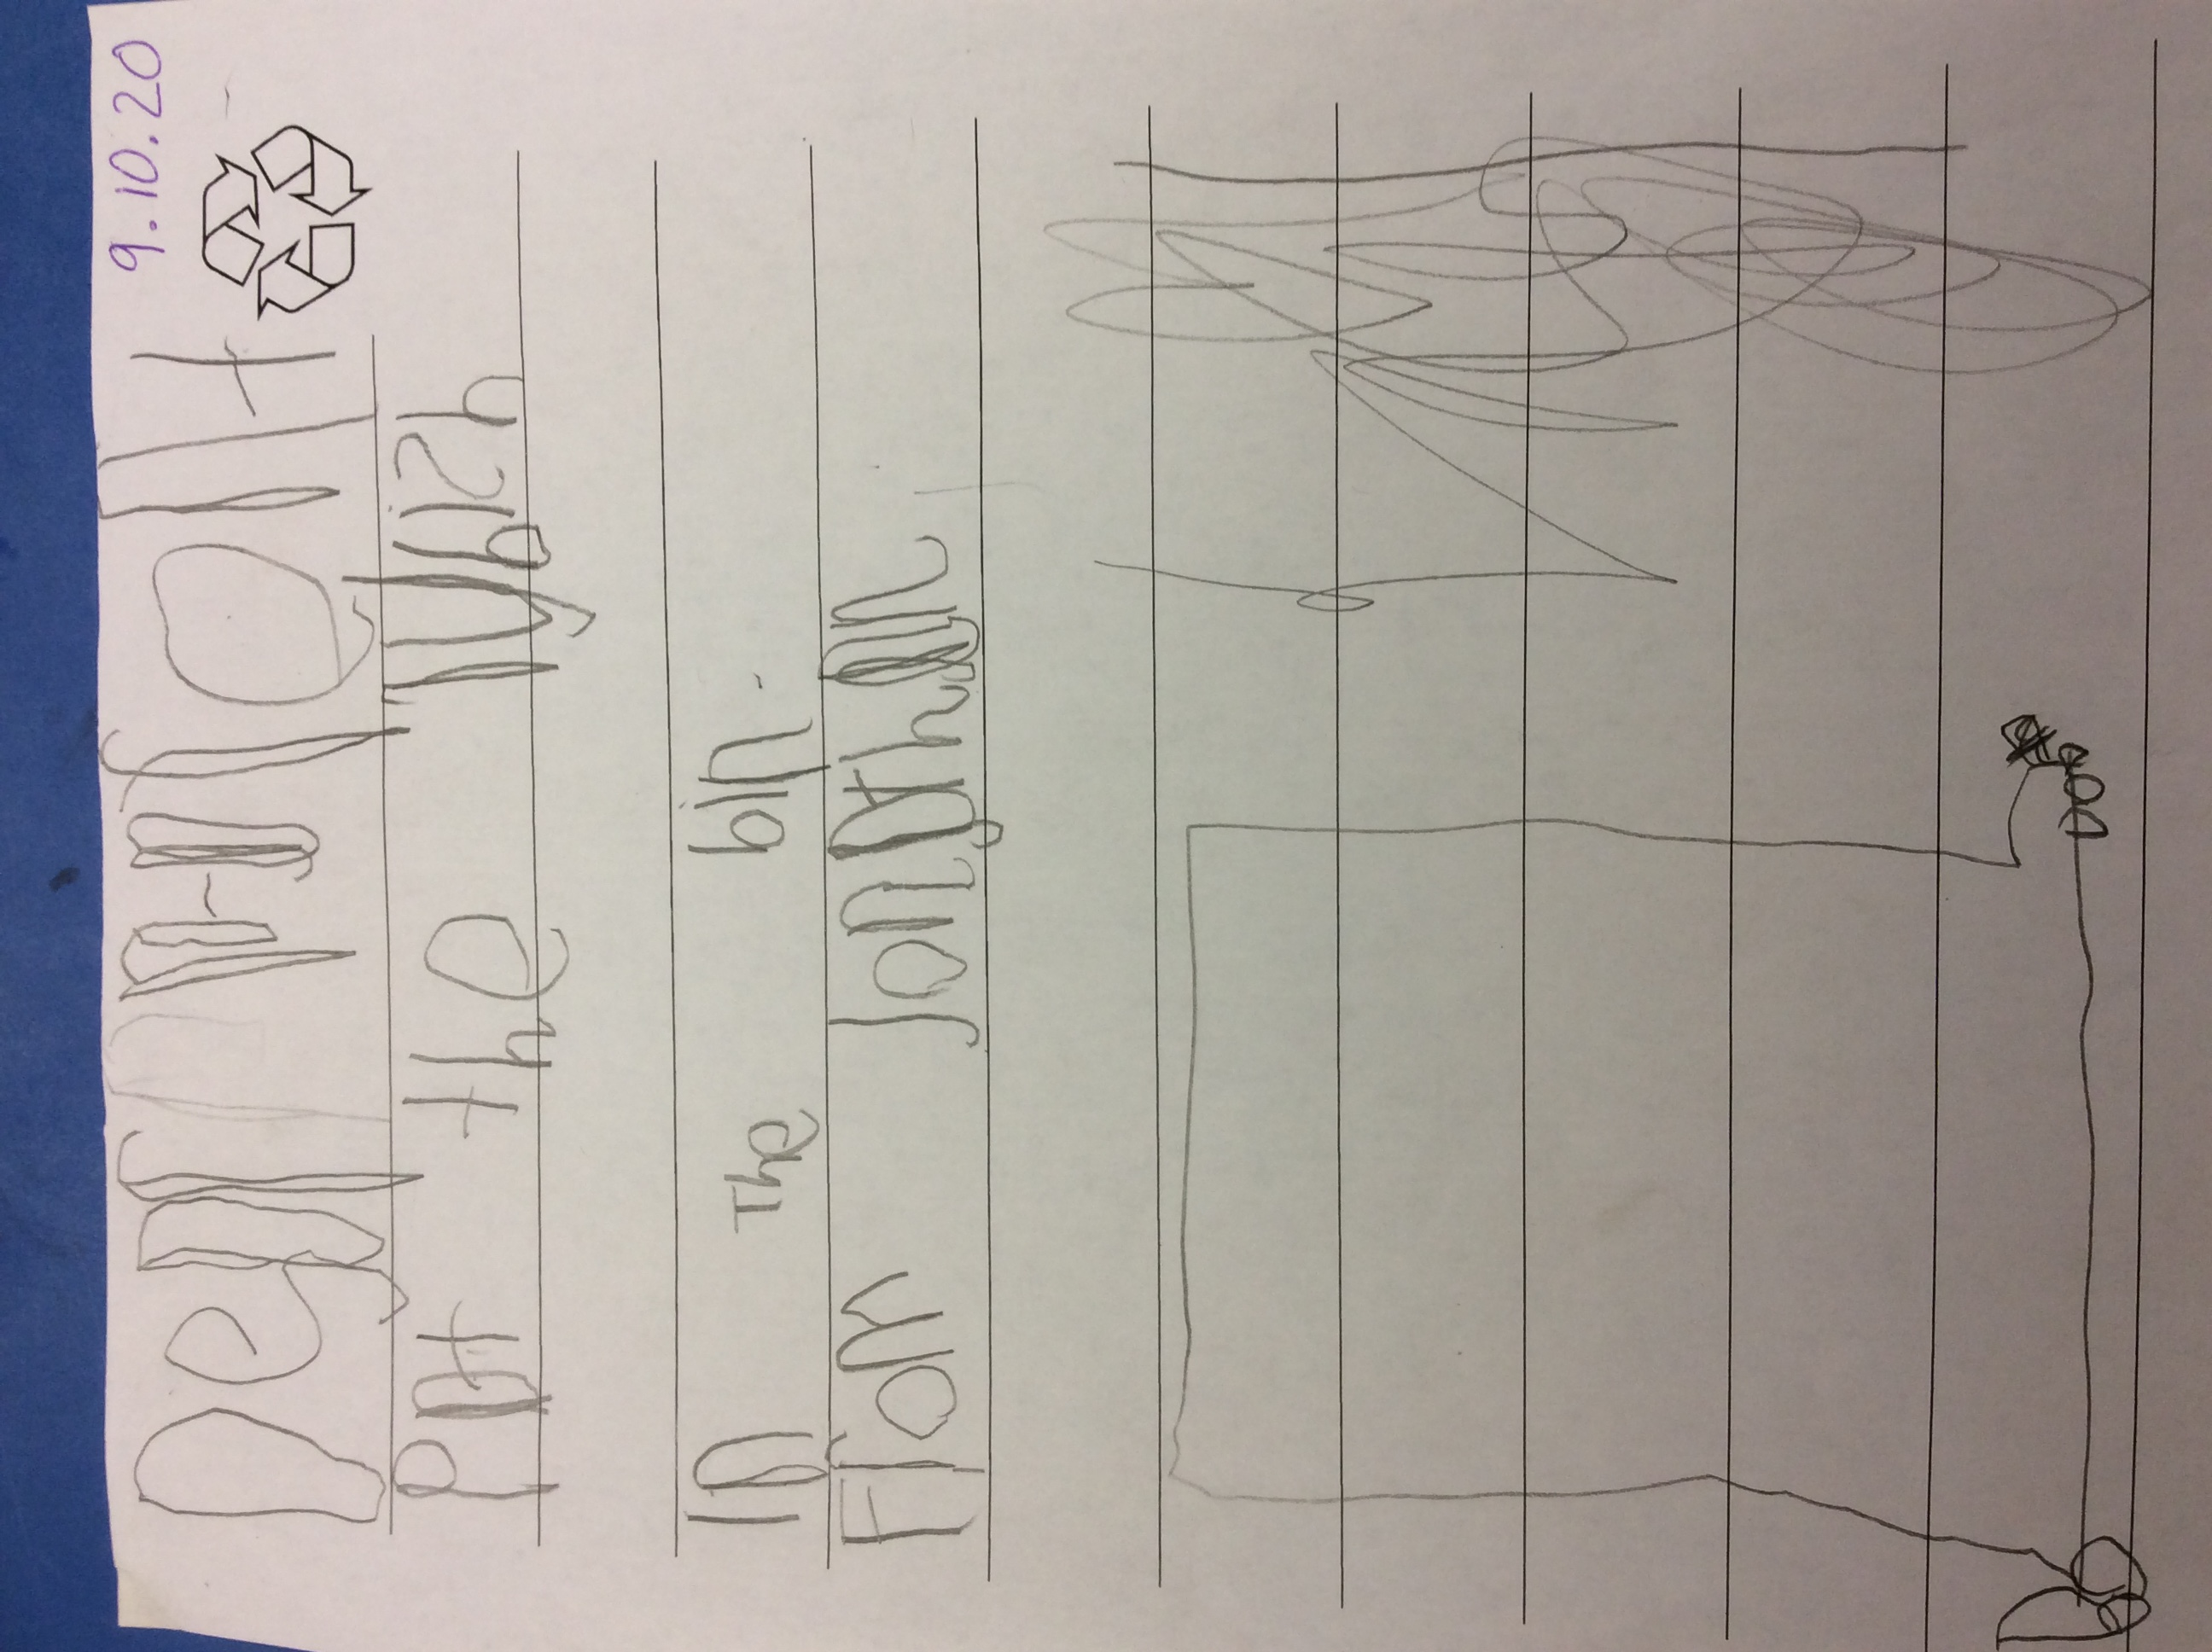 Jonathan's excellent writing!